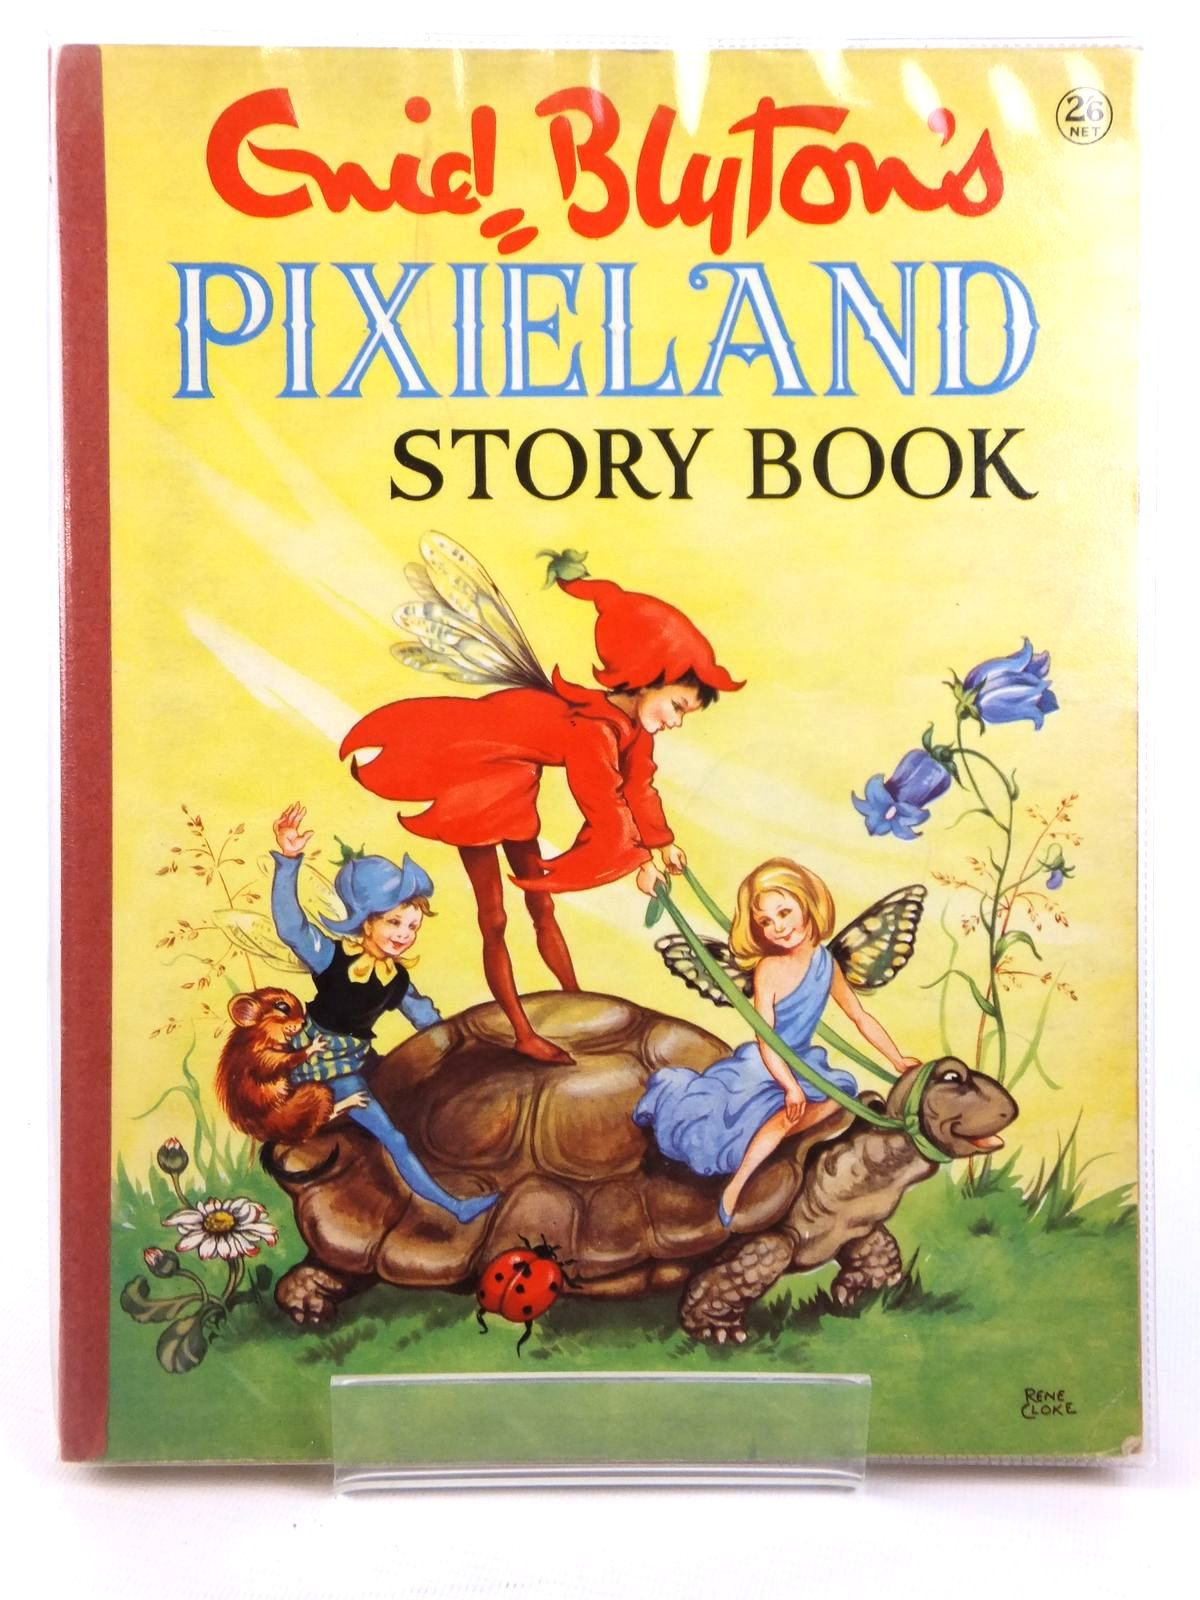 Photo of ENID BLYTON'S PIXIELAND STORY BOOK written by Blyton, Enid illustrated by Cloke, Rene published by Collins (STOCK CODE: 2122208)  for sale by Stella & Rose's Books